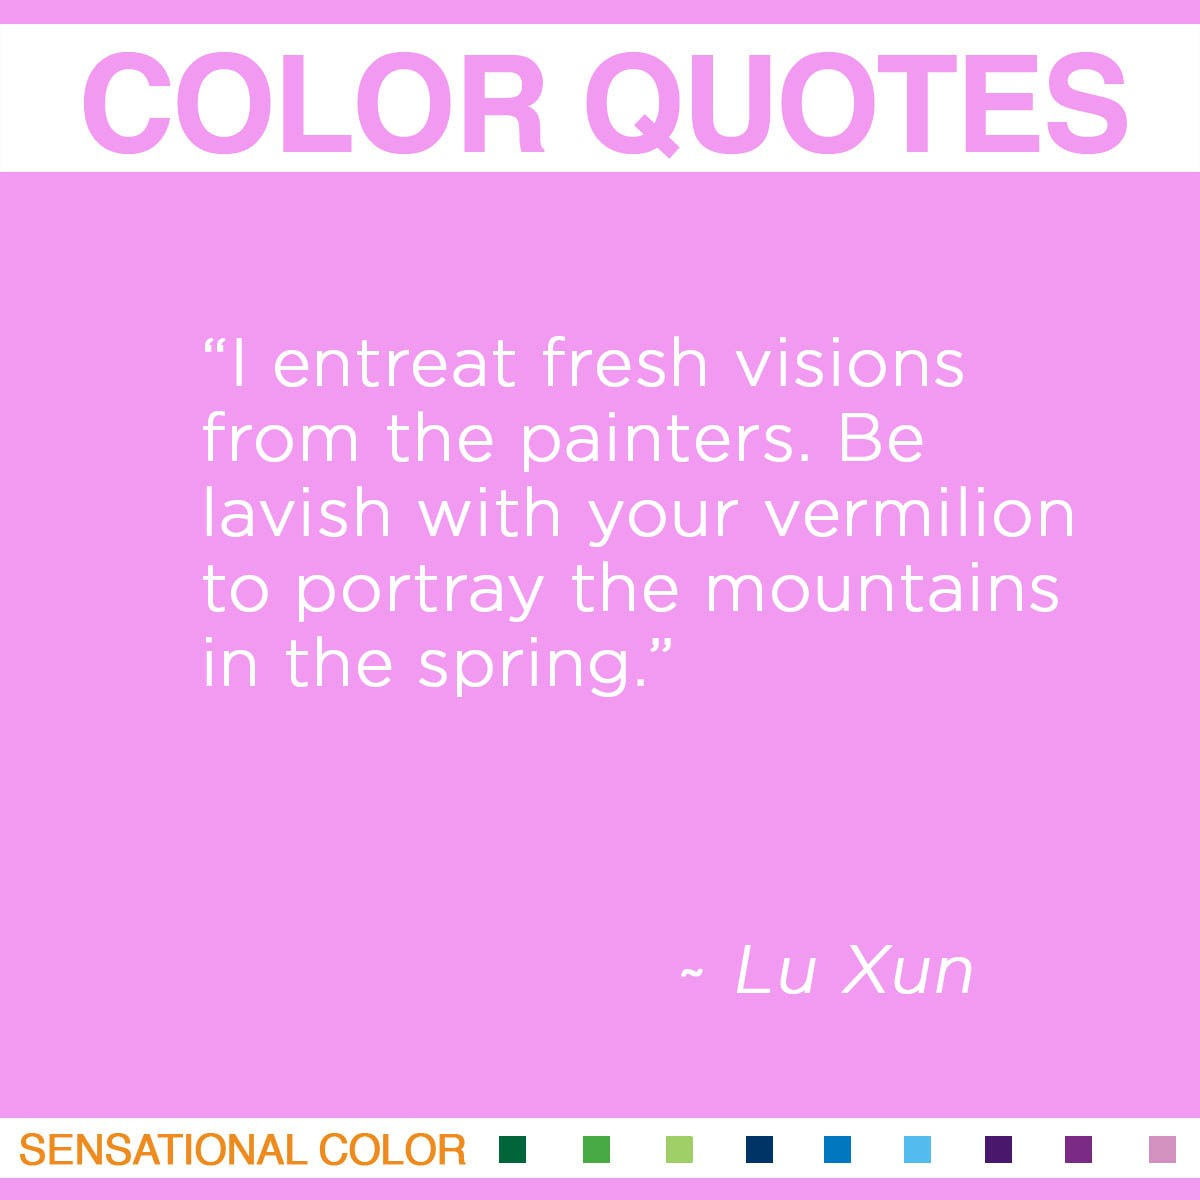 """I entreat fresh visions from the painters. Be lavish with your vermilion to portray the mountains in the spring."" - Lu Xun"